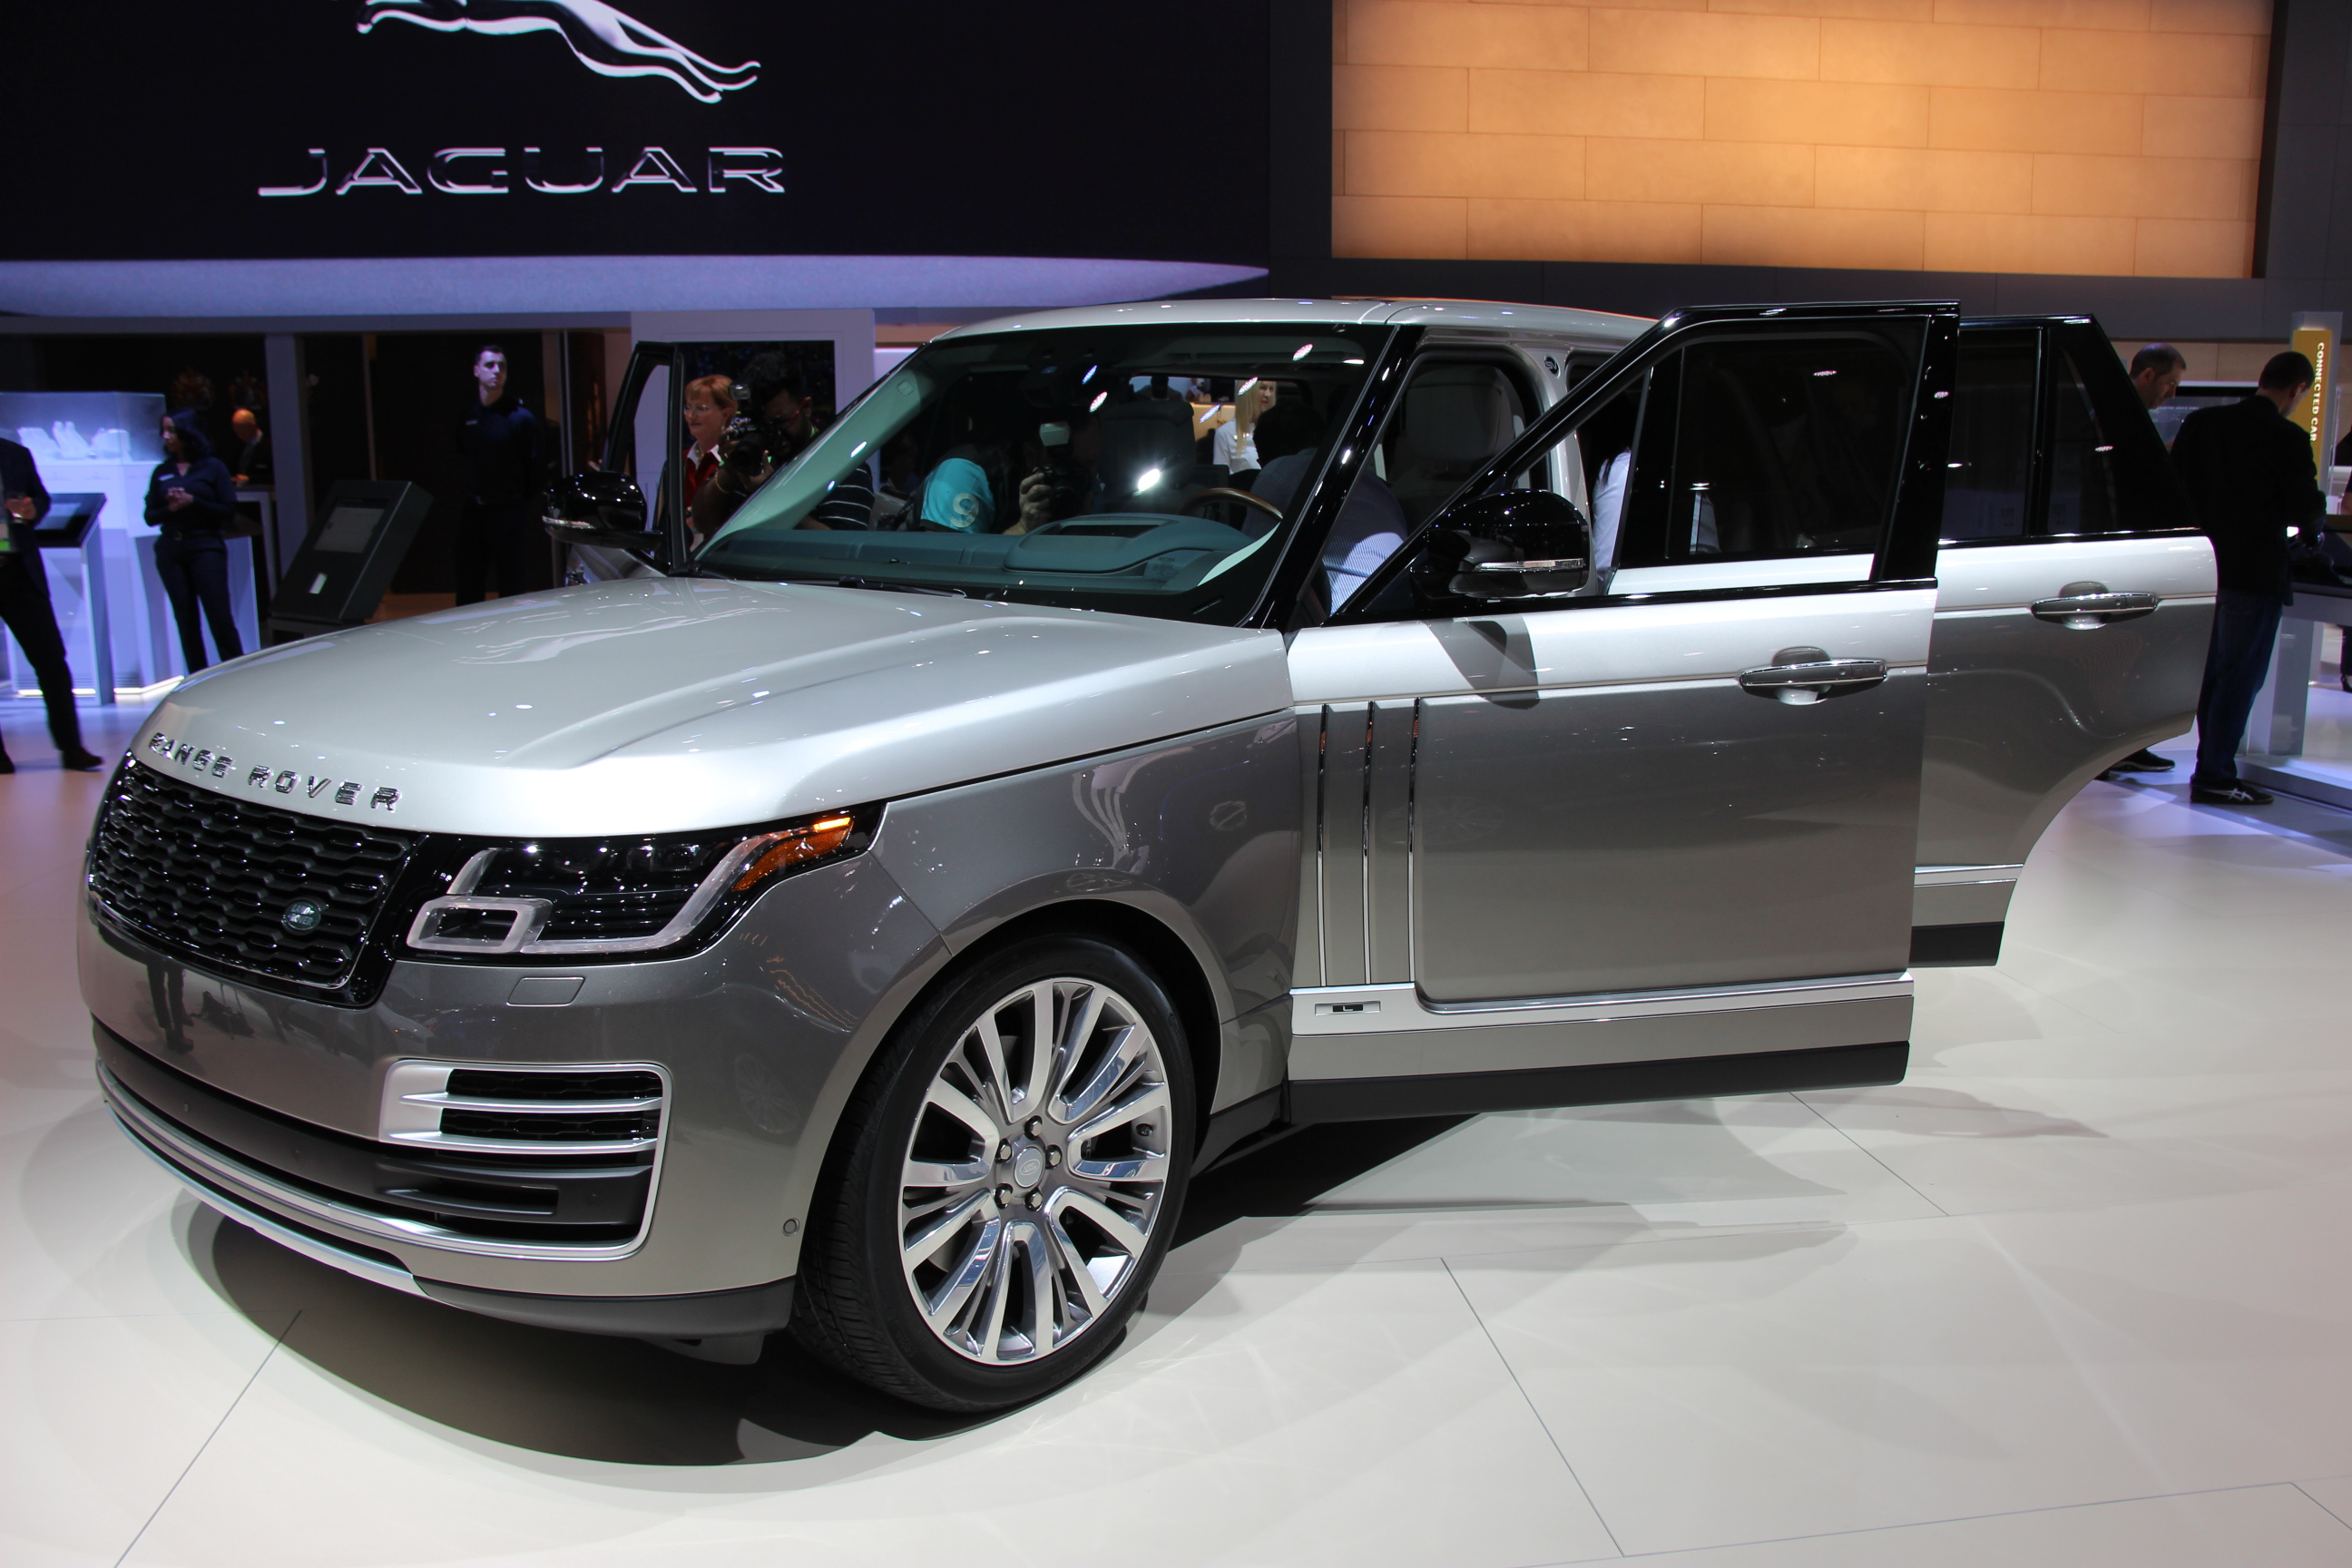 2018 Range Rover SVAutobiography unveiled in Los Angeles